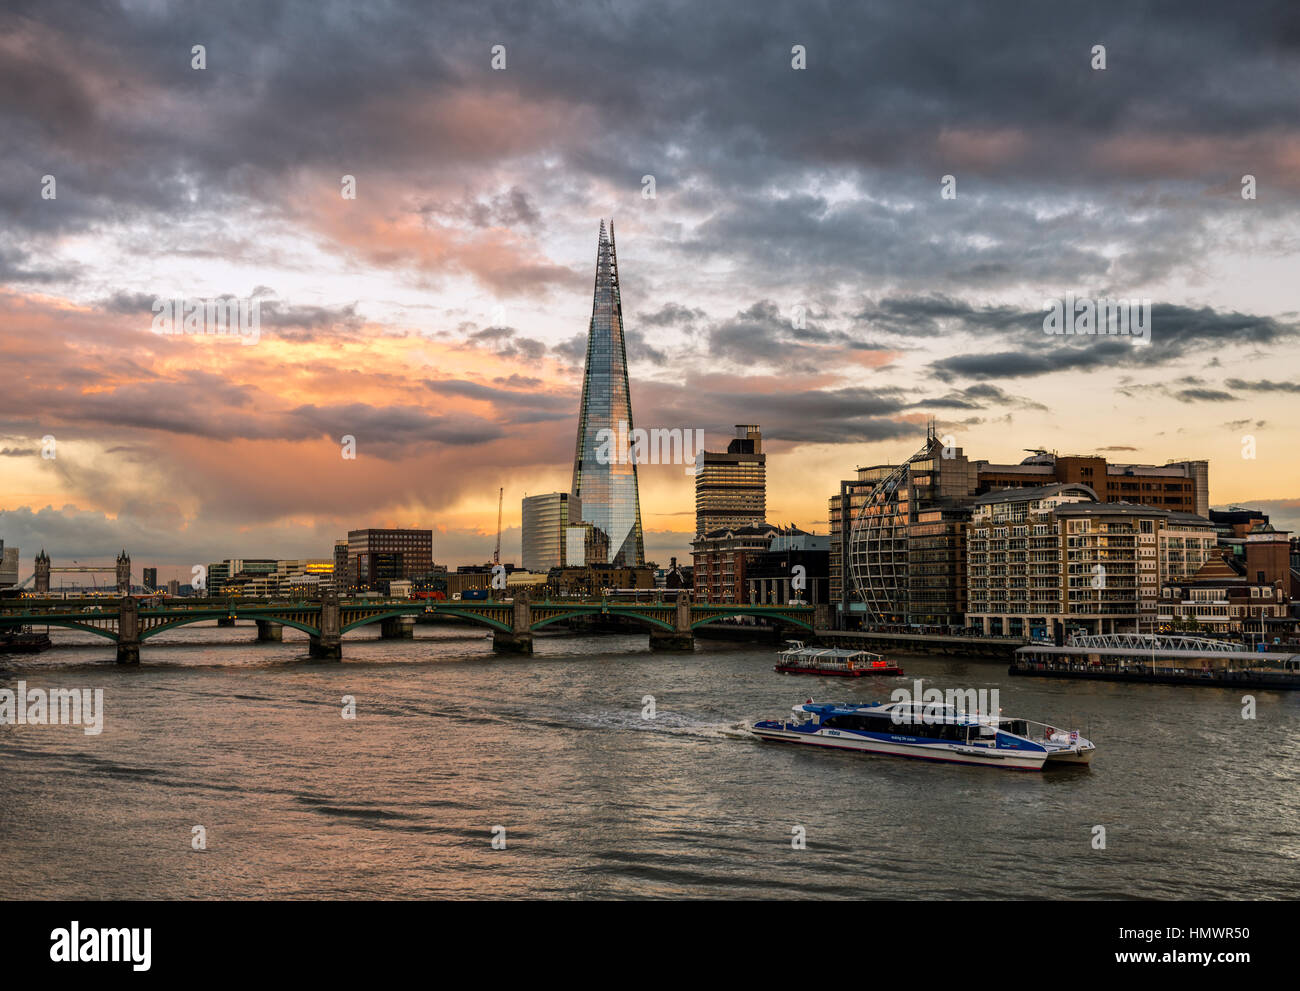 The River Thames at sunset with the Shard dominating the skyline - Stock Image